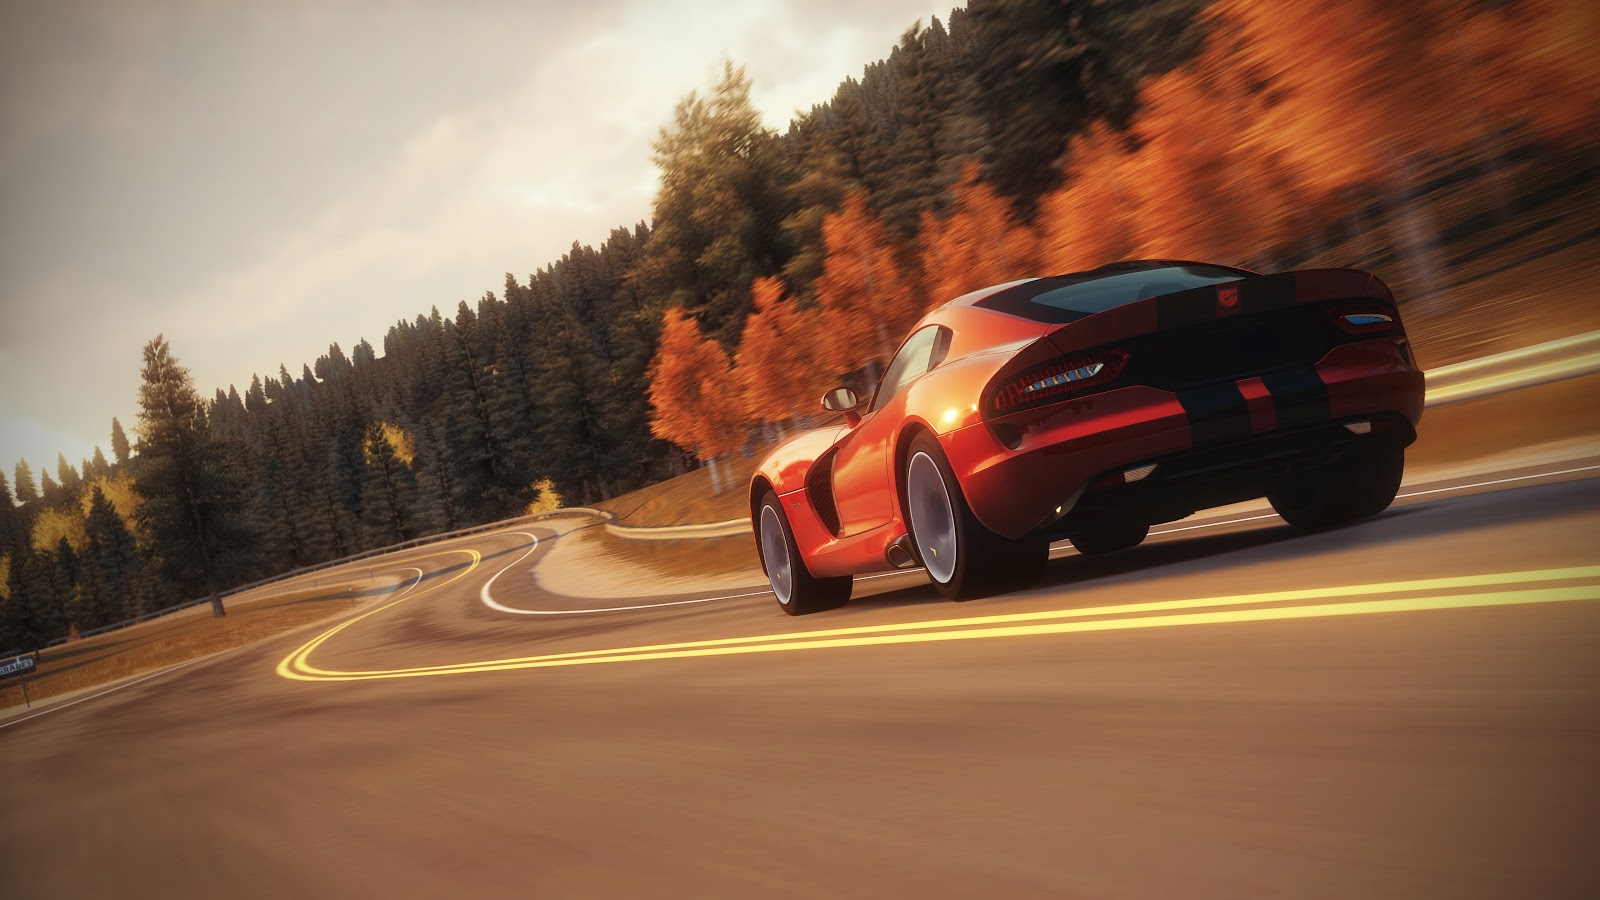 Forza Horizon HD & Widescreen Wallpaper 0.915004333608744